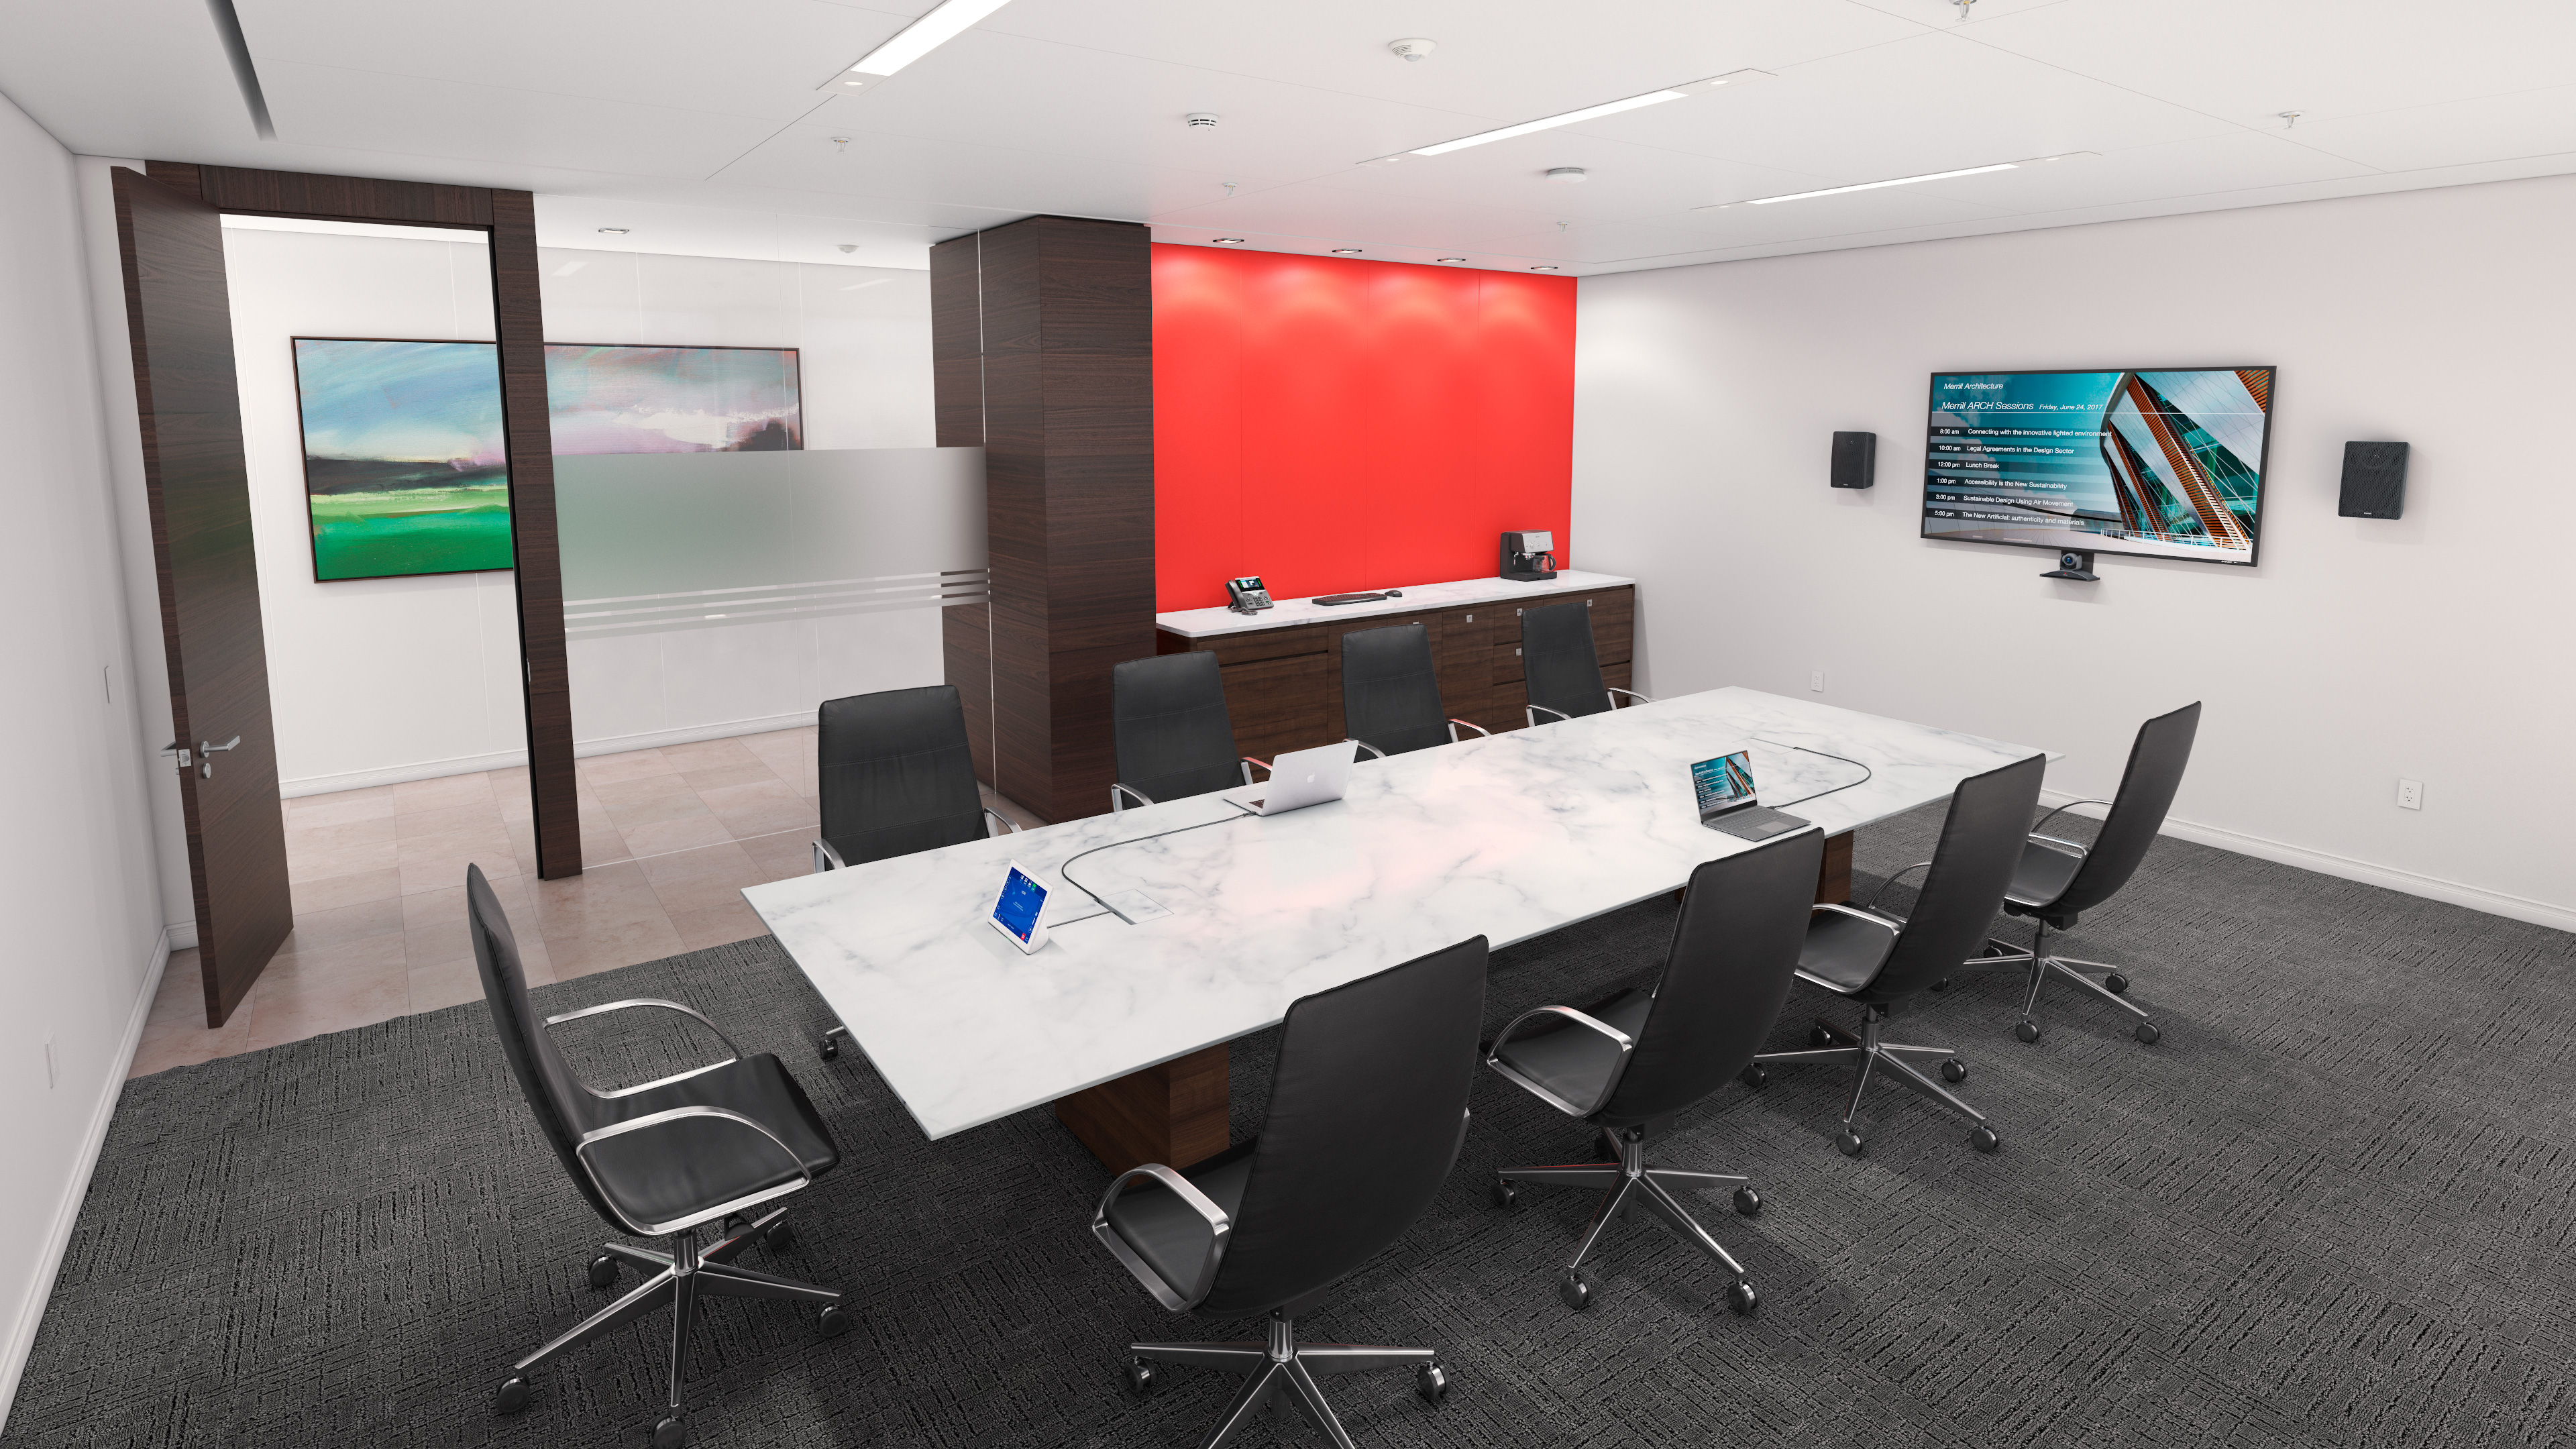 Cable Cubby 1252 MS creates a transition-free, nearly invisible appearance when closed, complementing any high end boardroom or meeting room furniture